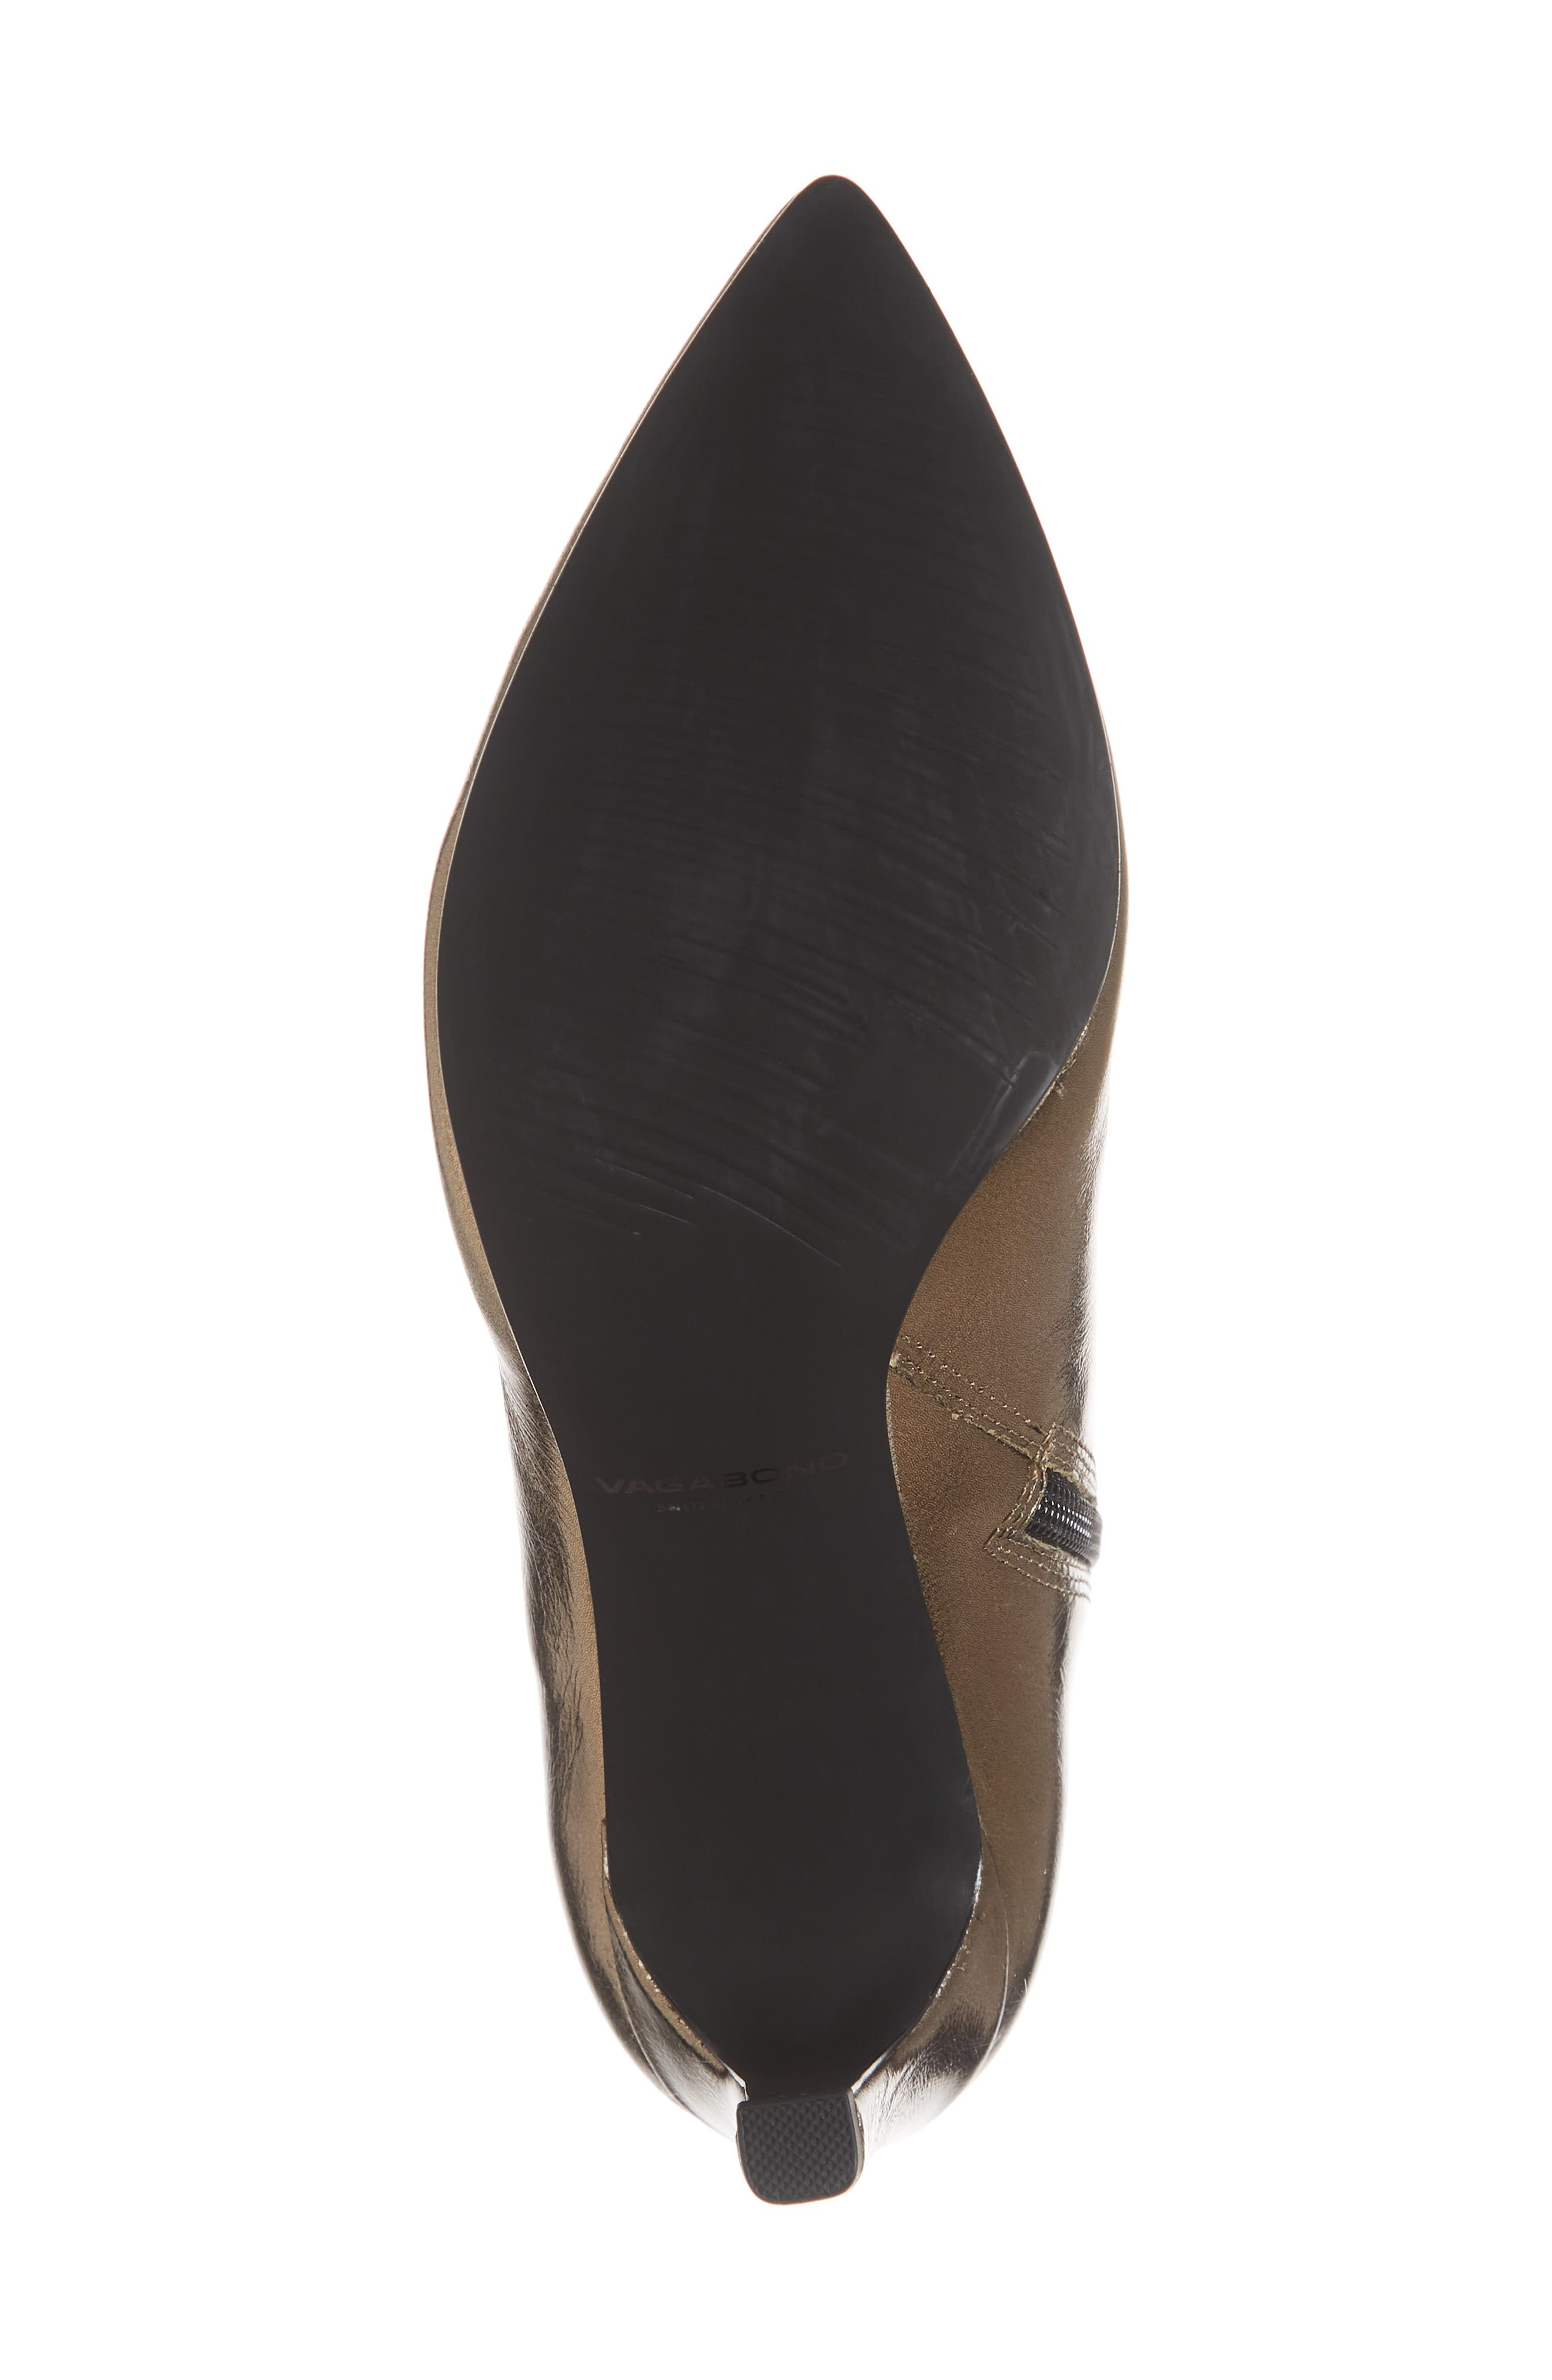 VAGABOND, Shoemakers Whitney Pointy Toe Bootie, Alternate thumbnail 6, color, BRONZE LEATHER